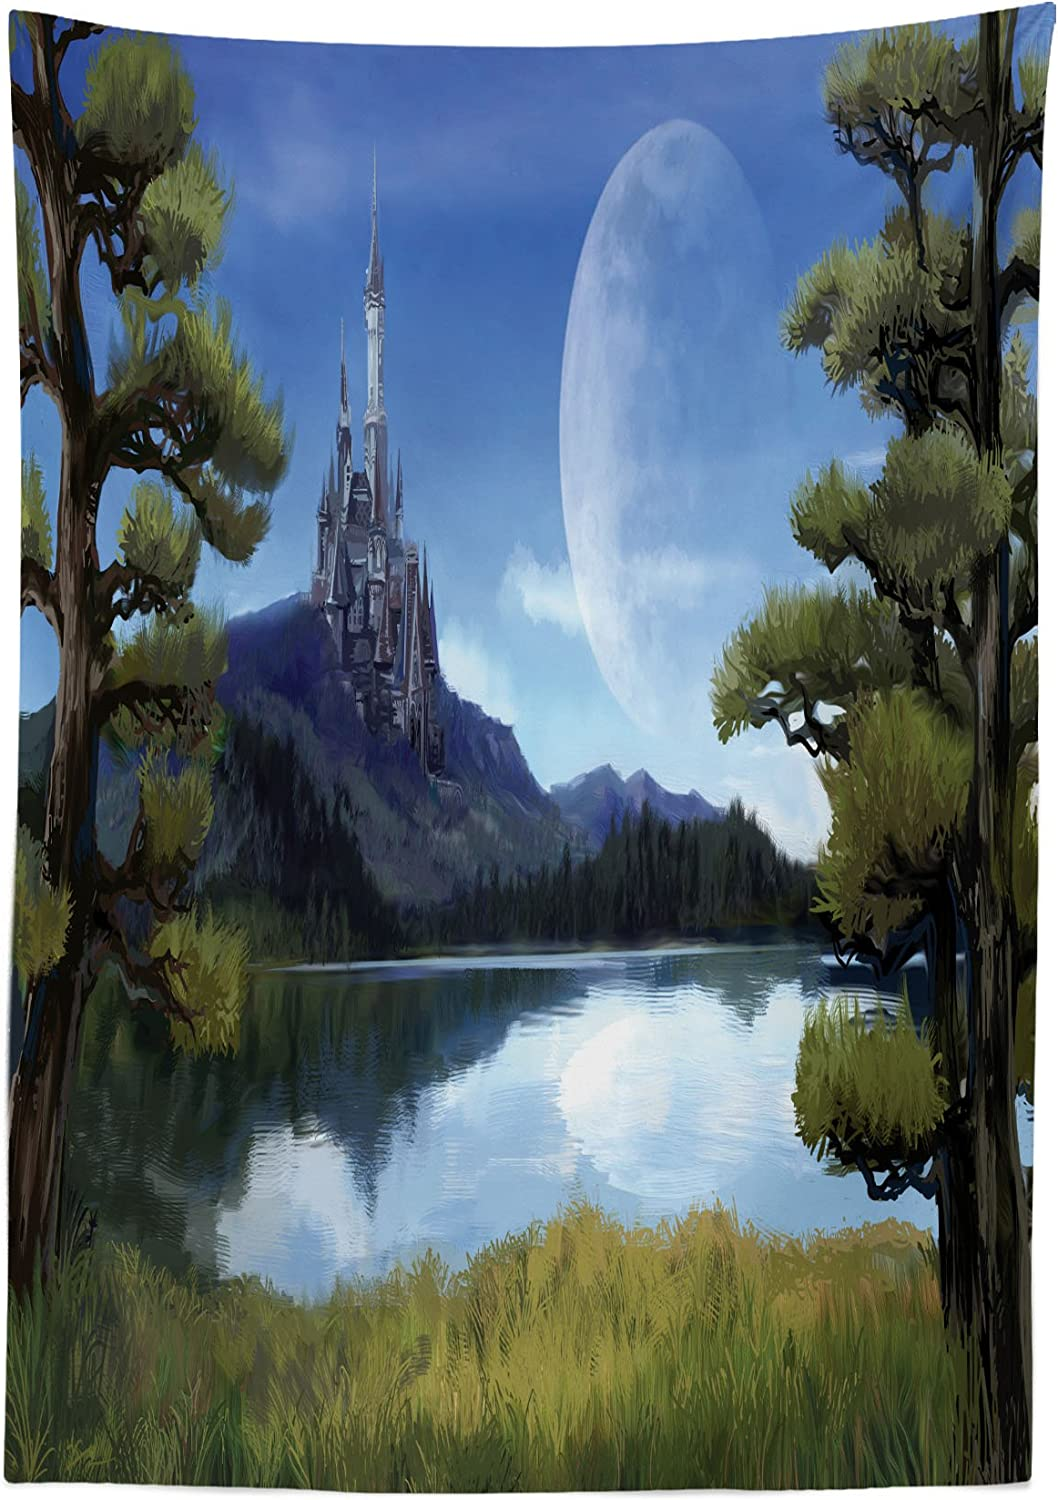 Amazon Com Ambesonne Fantasy Tablecloth Moon Surreal Scene With Riverside Lake Forest And Medieval Castle On Hill Art Dining Room Kitchen Rectangular Table Cover 52 X 70 Green And Blue Home Kitchen